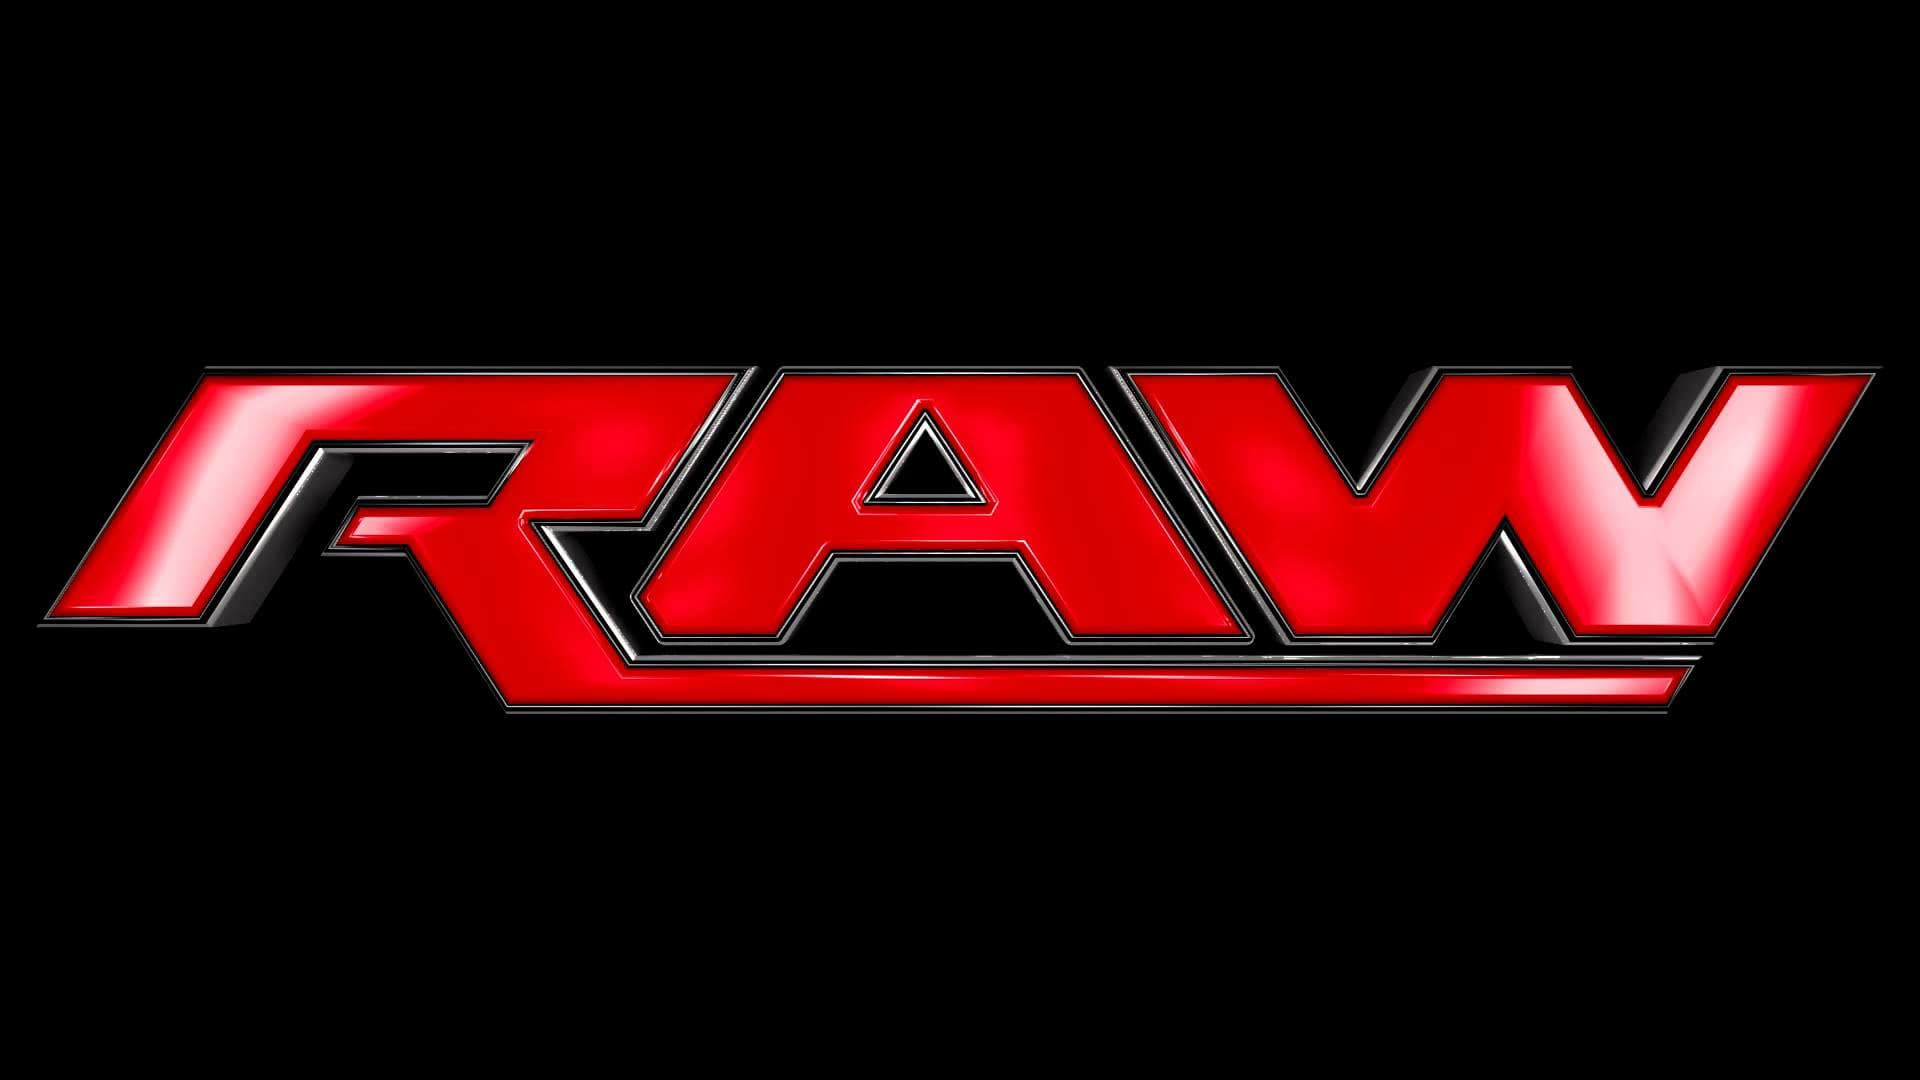 WWE Raw - Season 23 Episode 12 : March 23, 2015 (Los Angeles, CA) (1970)